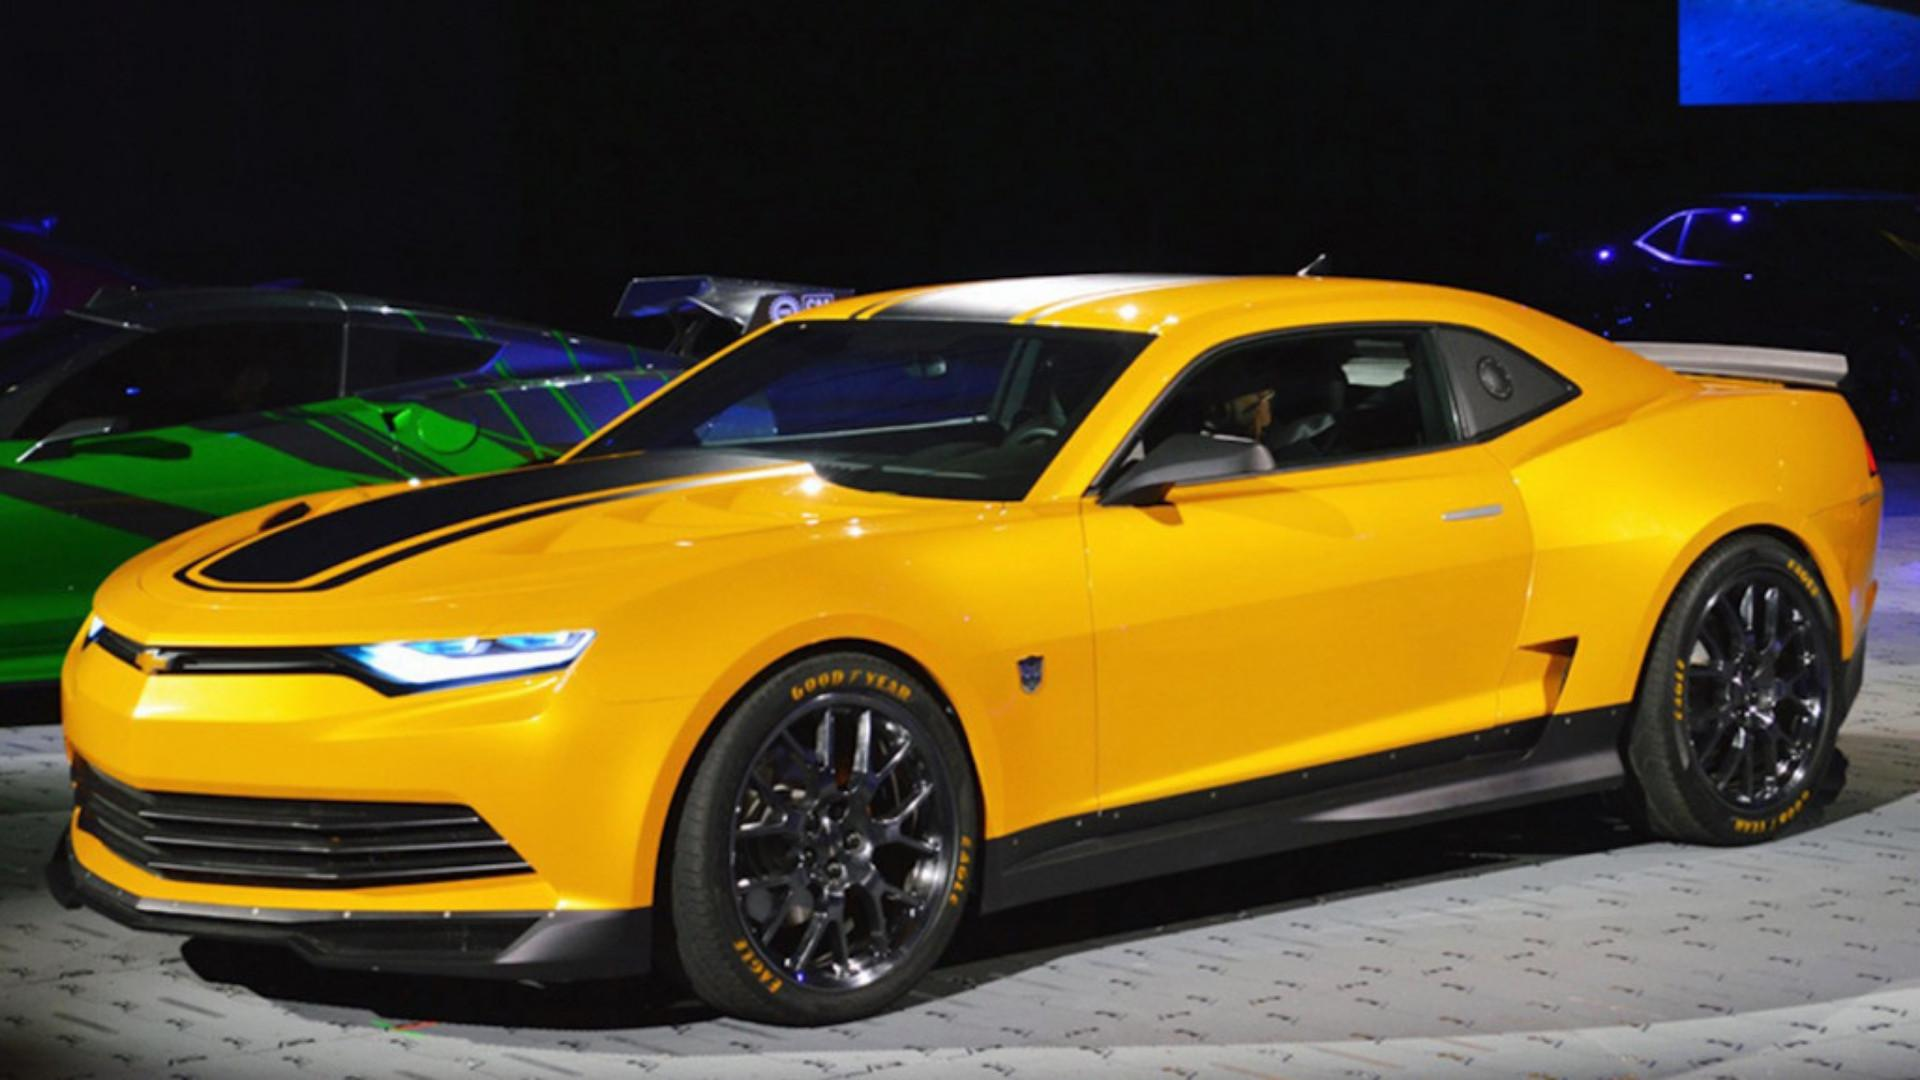 Transformers' Bumblebee Chevy Camaros Pull $500,000 in Group Auction